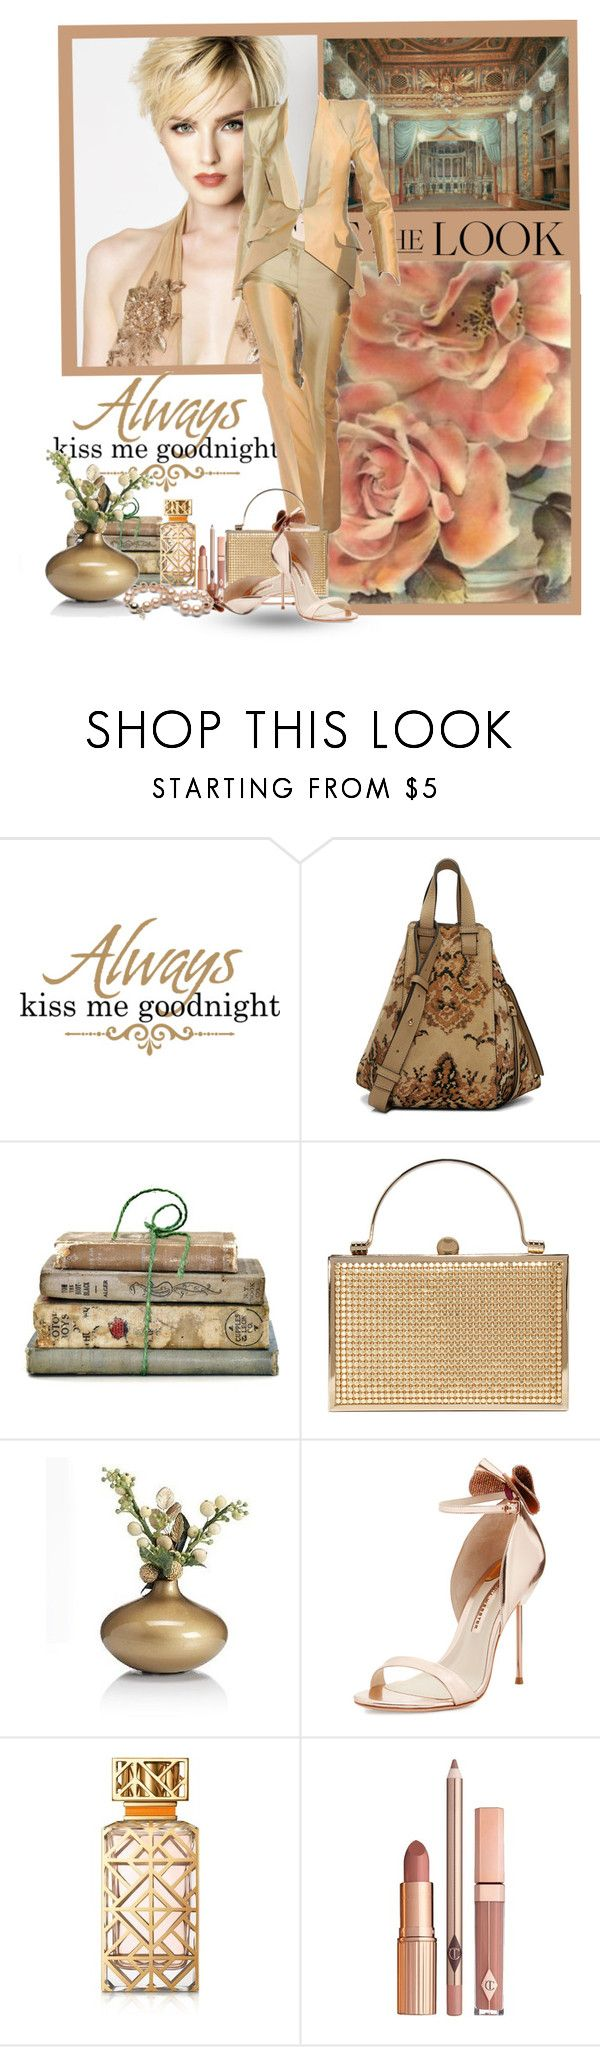 """""""Get the Look"""" by flowerchild805 ❤ liked on Polyvore featuring WALL, Loewe, Shabby Chic, Marks & Spencer, Sophia Webster, Tory Burch and Dolce Vita"""